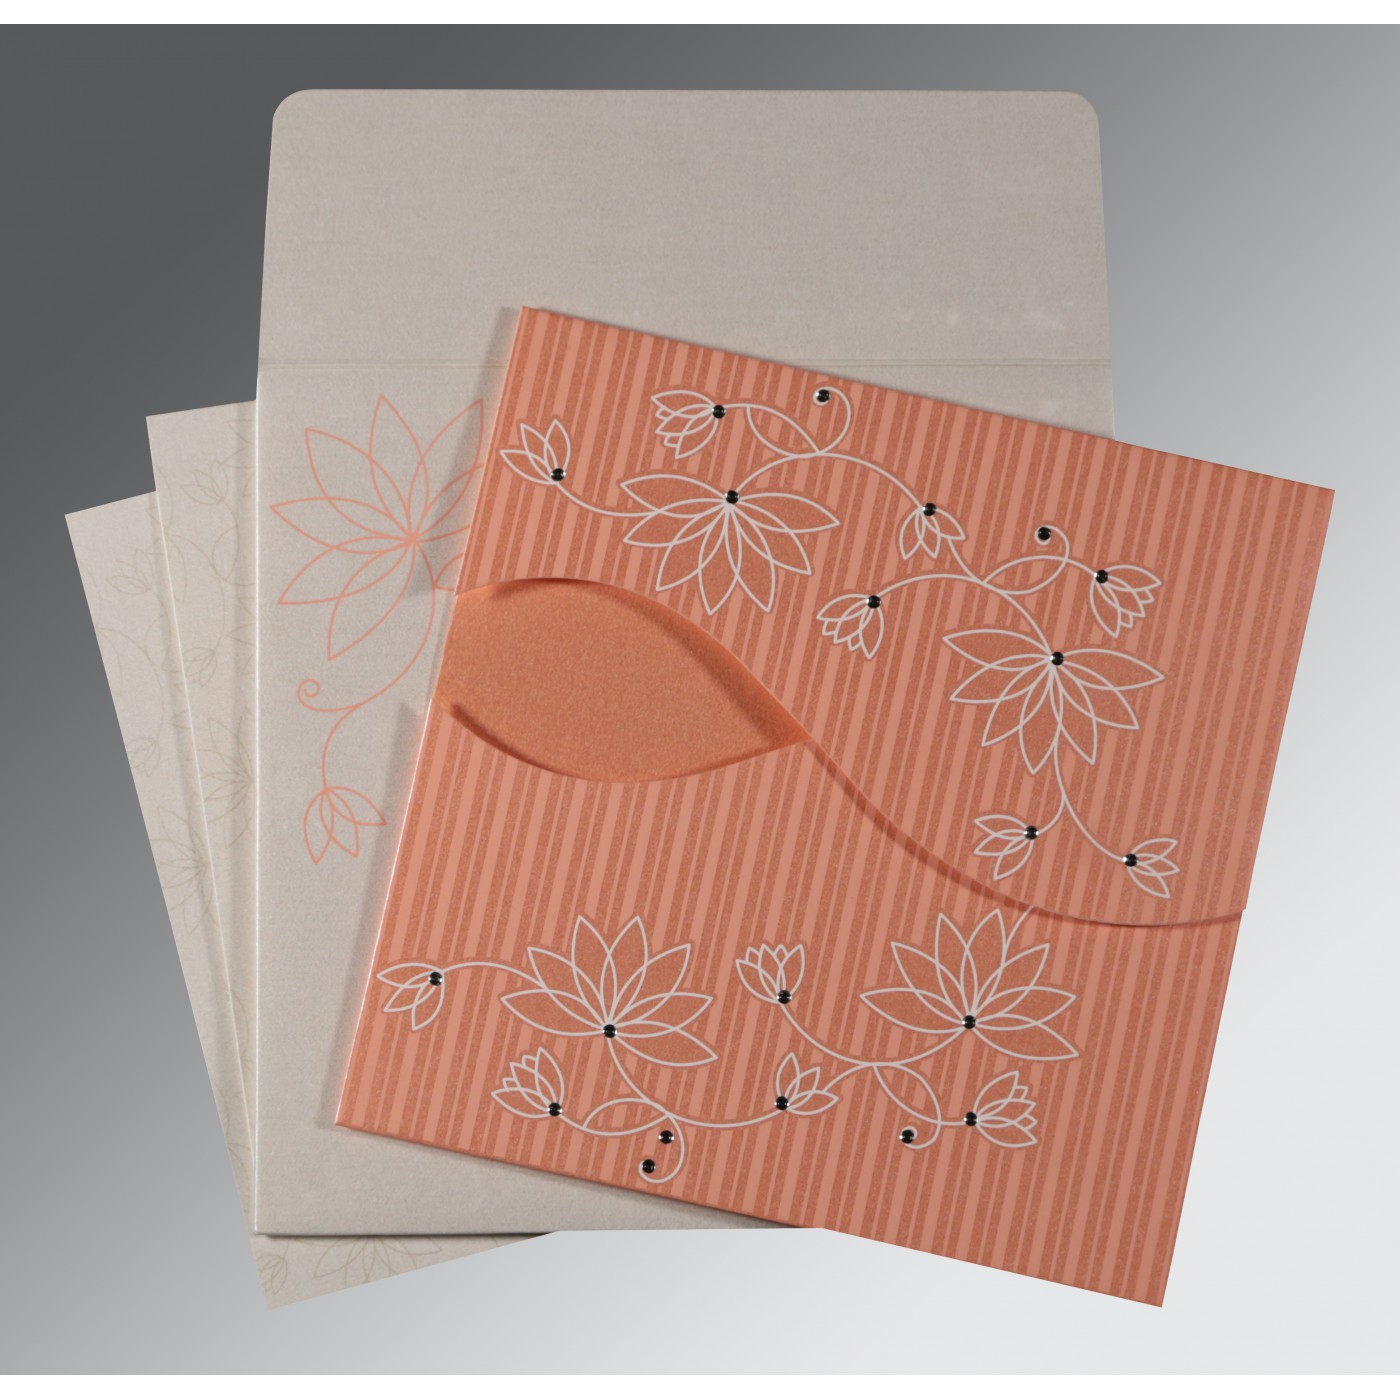 CORAL SHIMMERY FLORAL THEMED - SCREEN PRINTED WEDDING INVITATION : C-8251I - 123WeddingCards